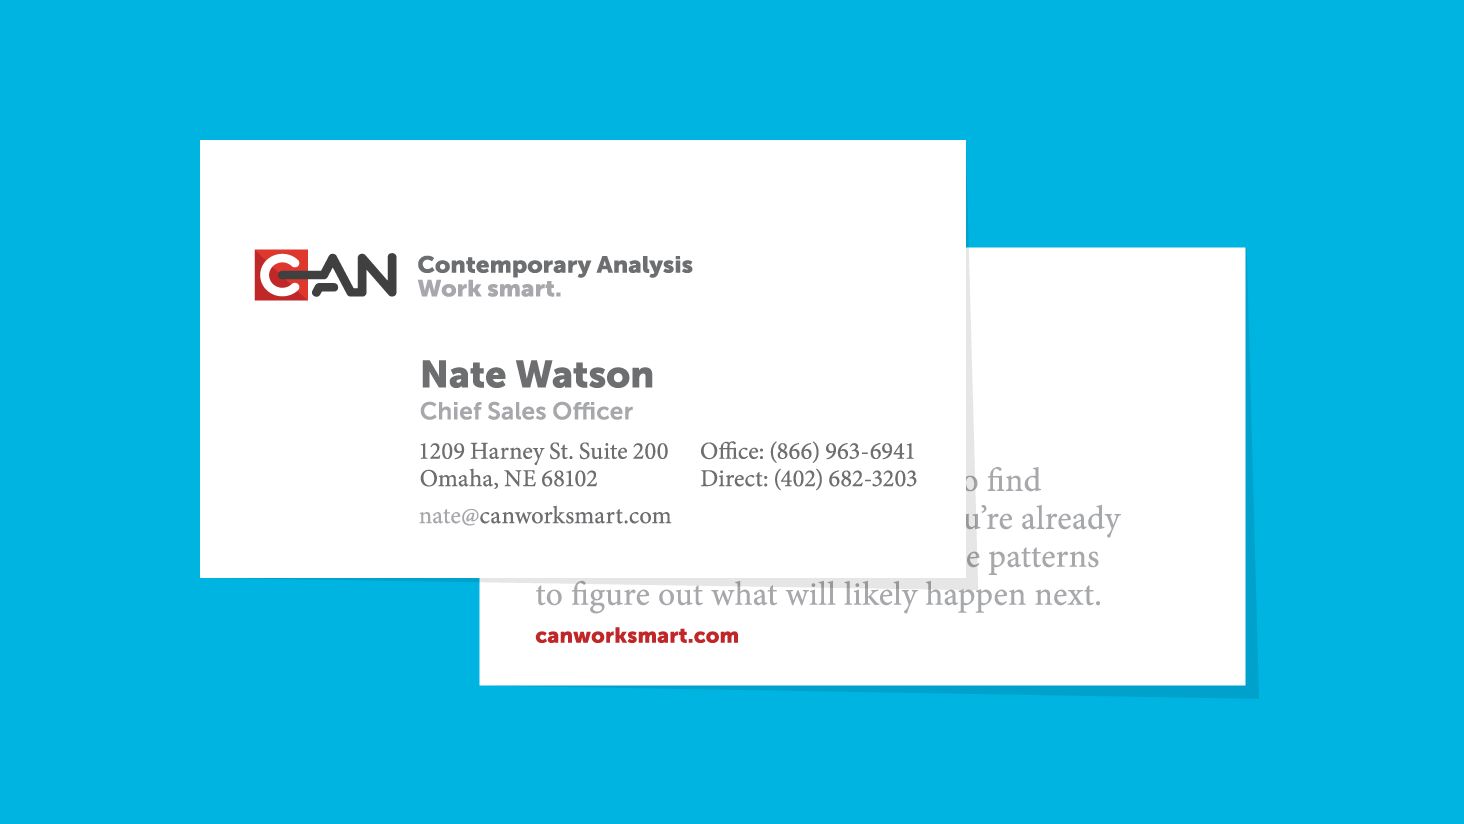 What to put on your business card - Contemporary Analysis